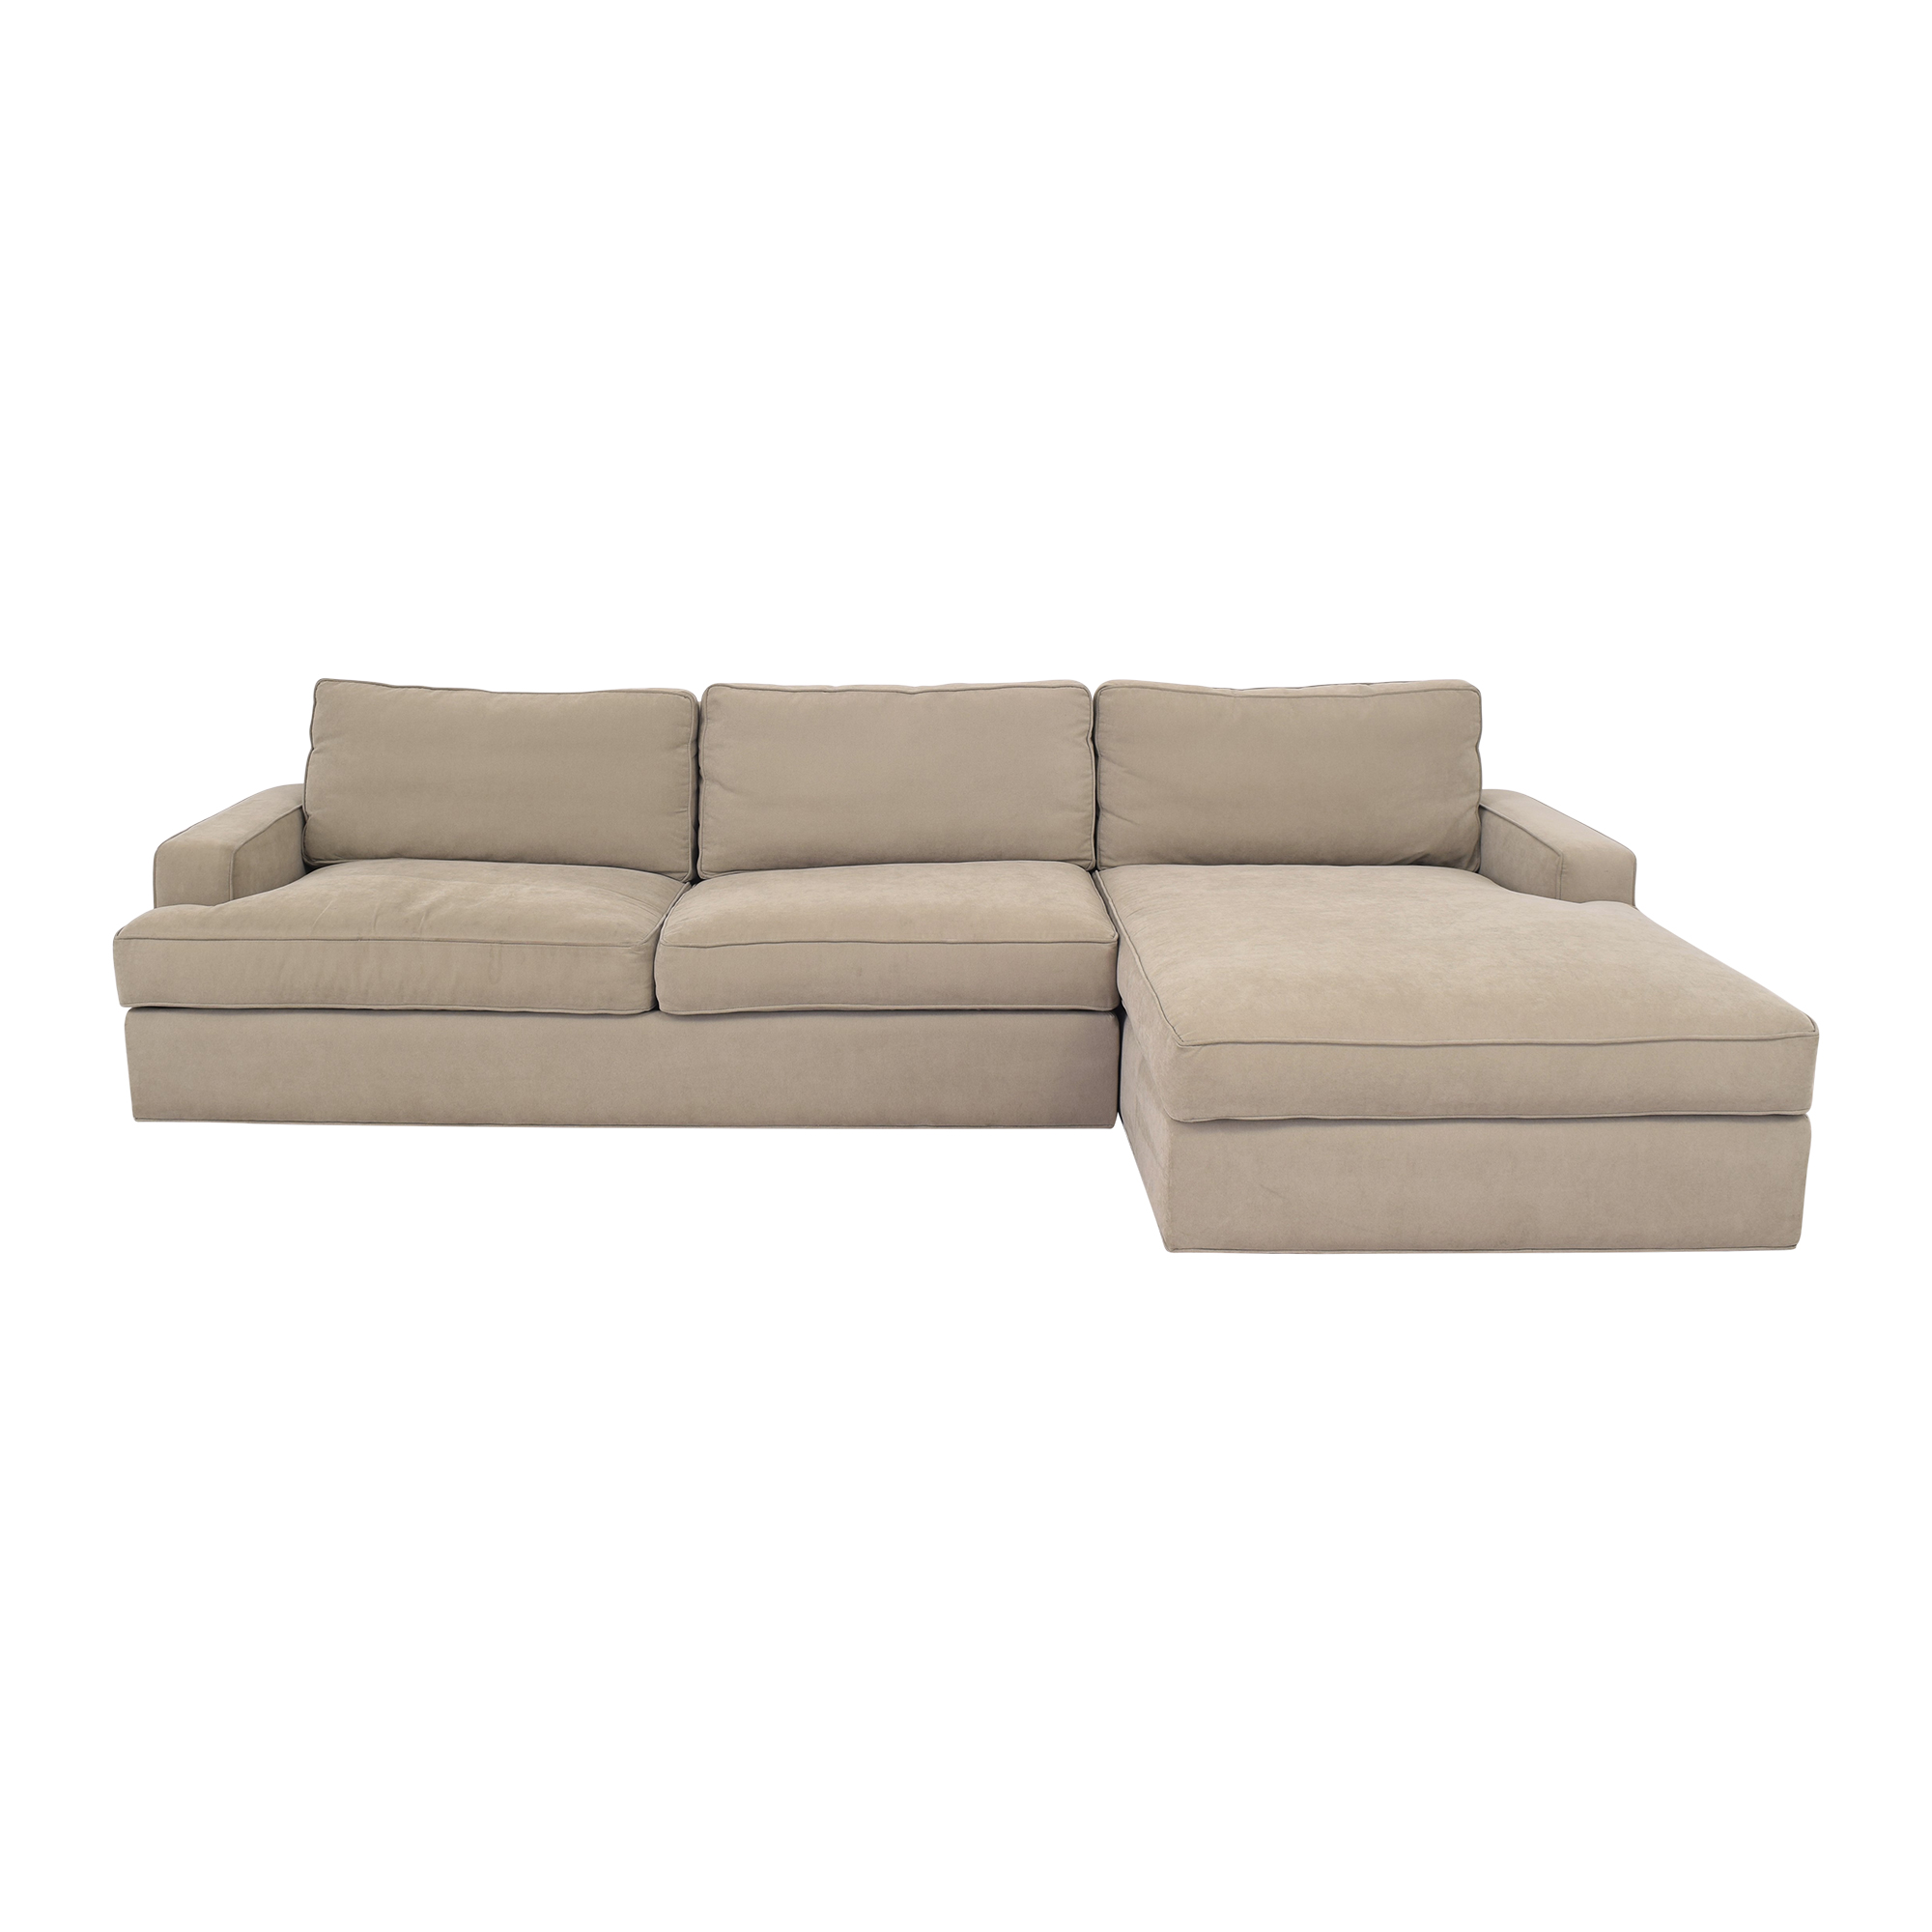 buy Room & Board York Sectional Sofa Room & Board Sectionals